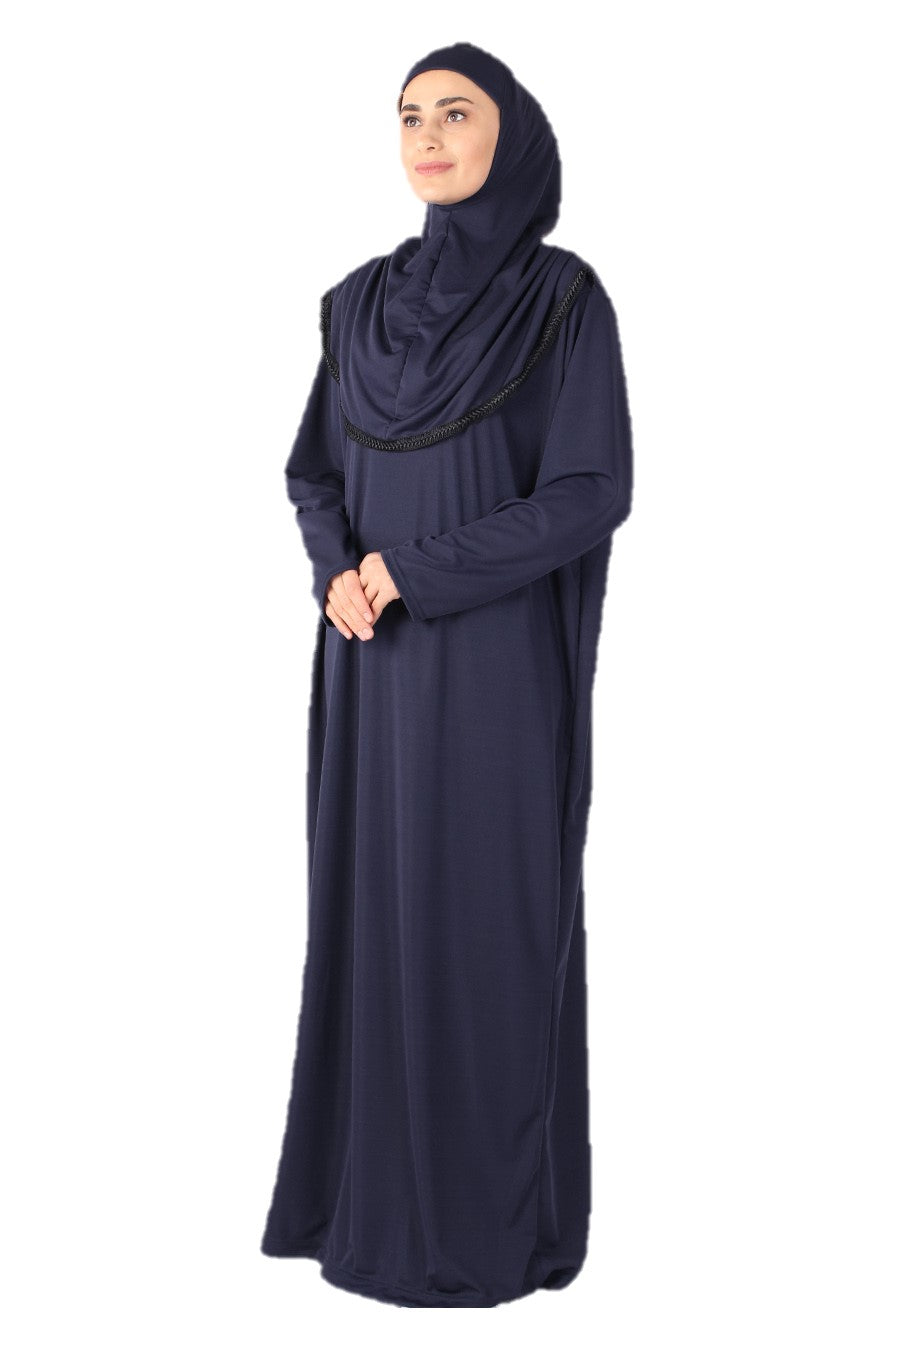 Navy with Lace Turkish Prayer Dress - Chaddors